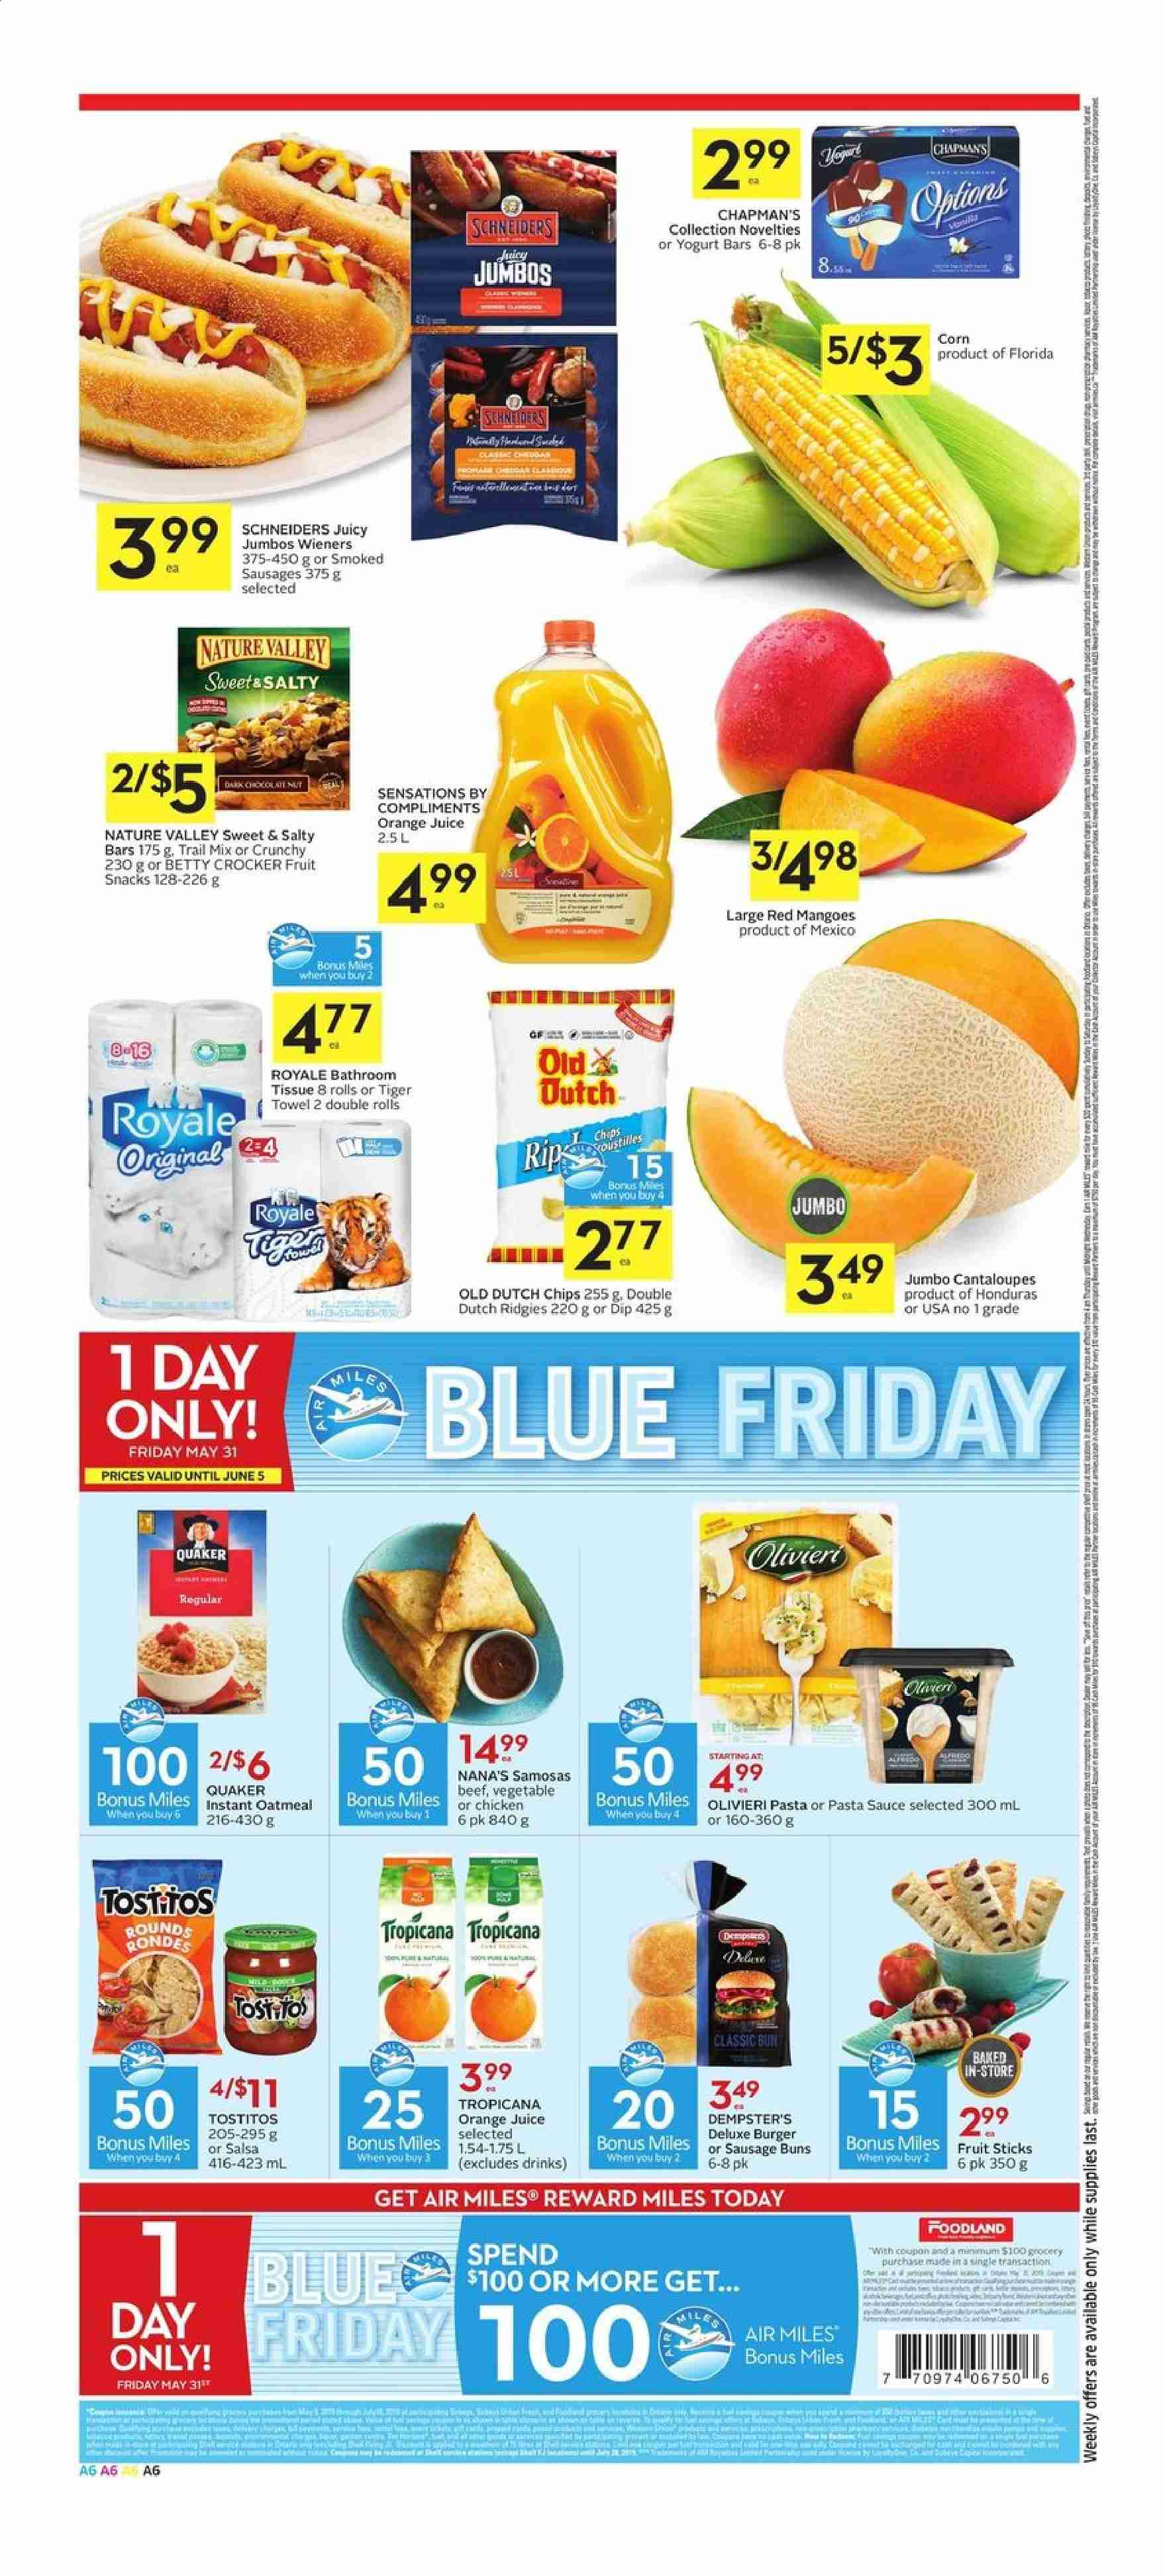 Foodland Flyer  - May 30, 2019 - June 05, 2019. Page 6.